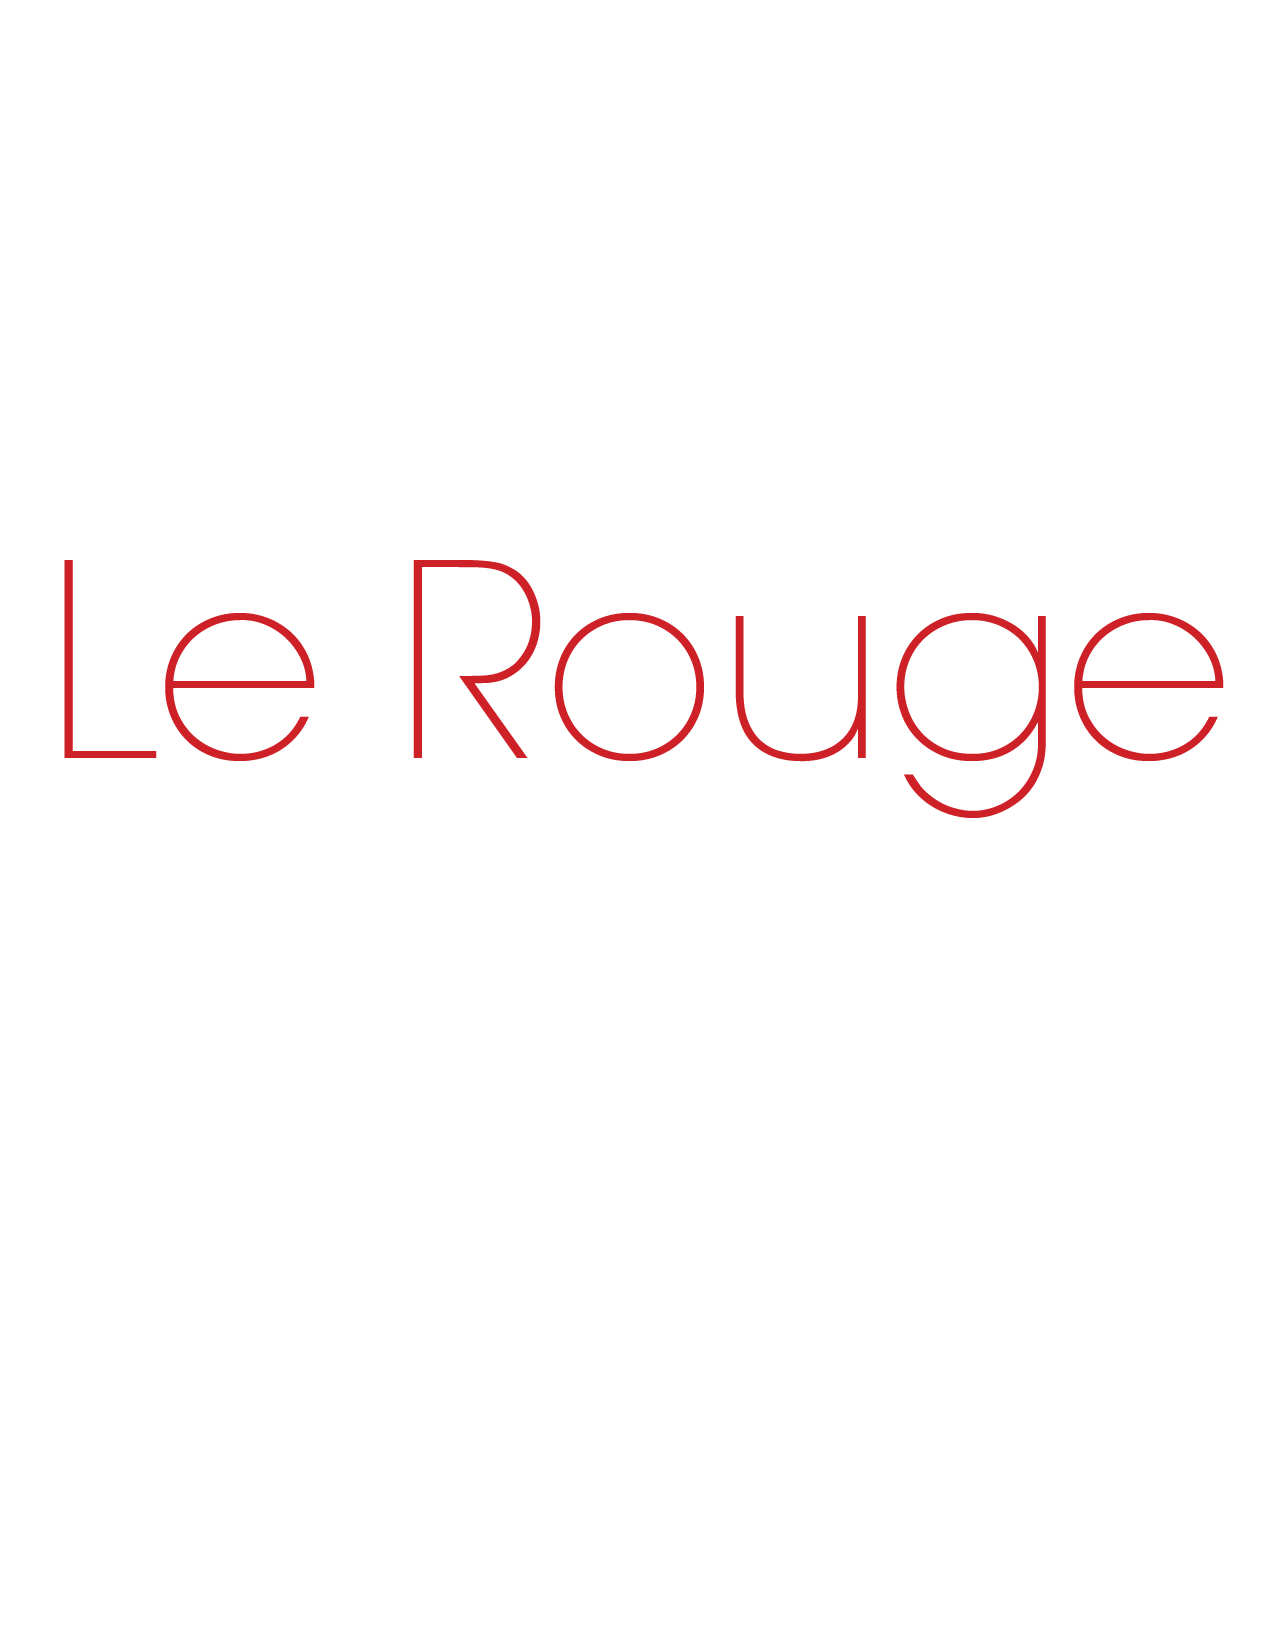 Le Rouge Restaurant Lounge and Martini Bar